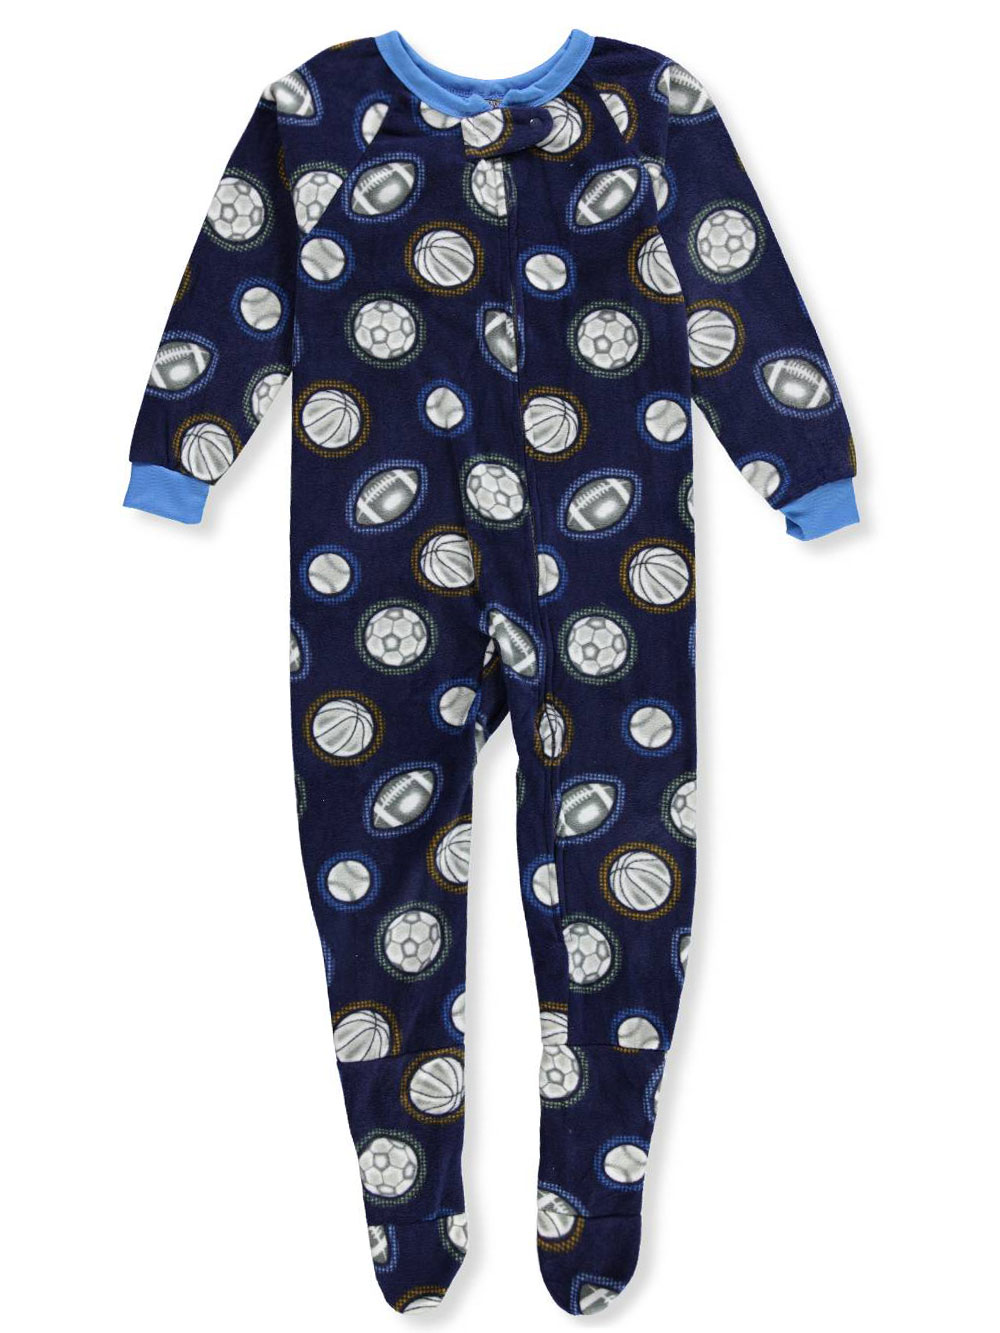 Quad Seven Boys' 1-Piece Footed Pajamas